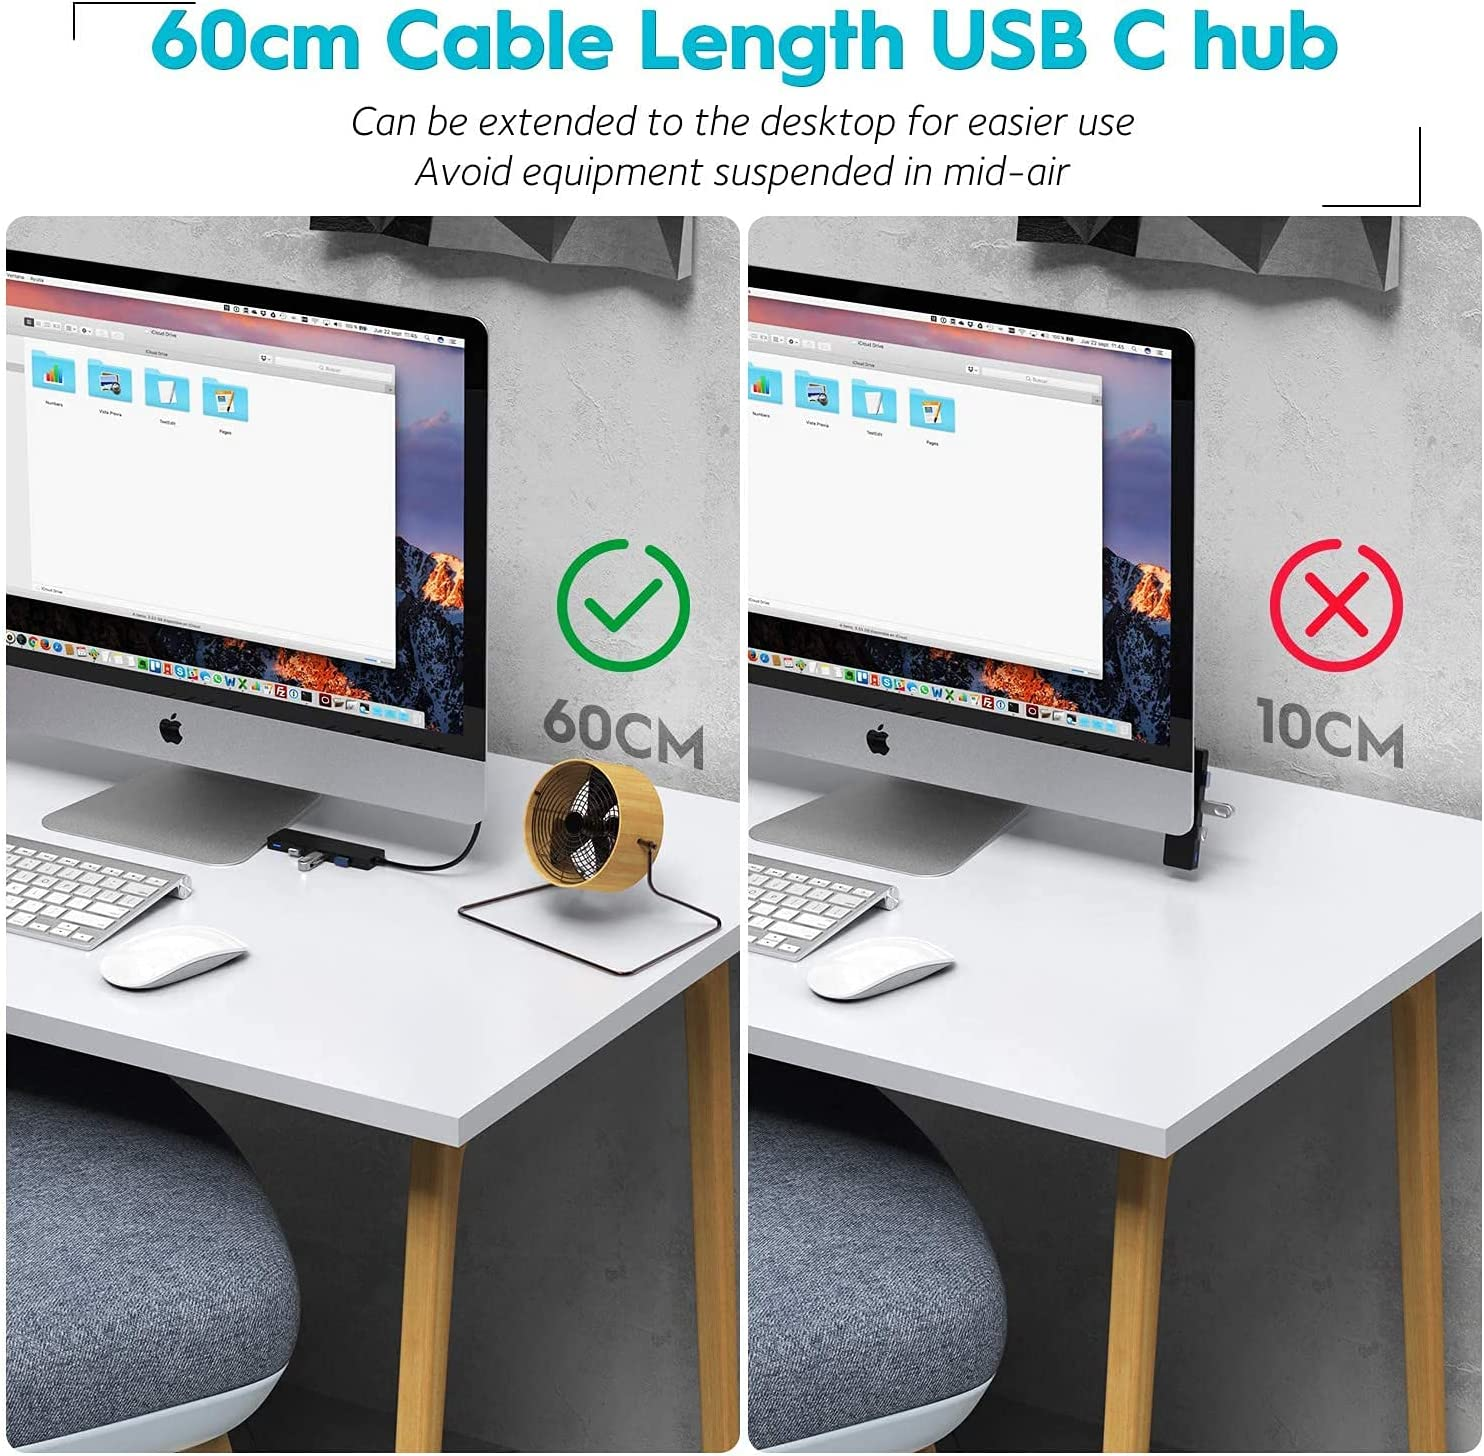 Aceele 5 Port USB 3.0 USB Type C Hub, Ultra-Slim with 2ft Extended Cable, 5 Gbps SuperSpeed, Micro USB Charging, for 2020 MacBook Pro, Surface Pro 7, Samsung S21, and Other USB C Devices